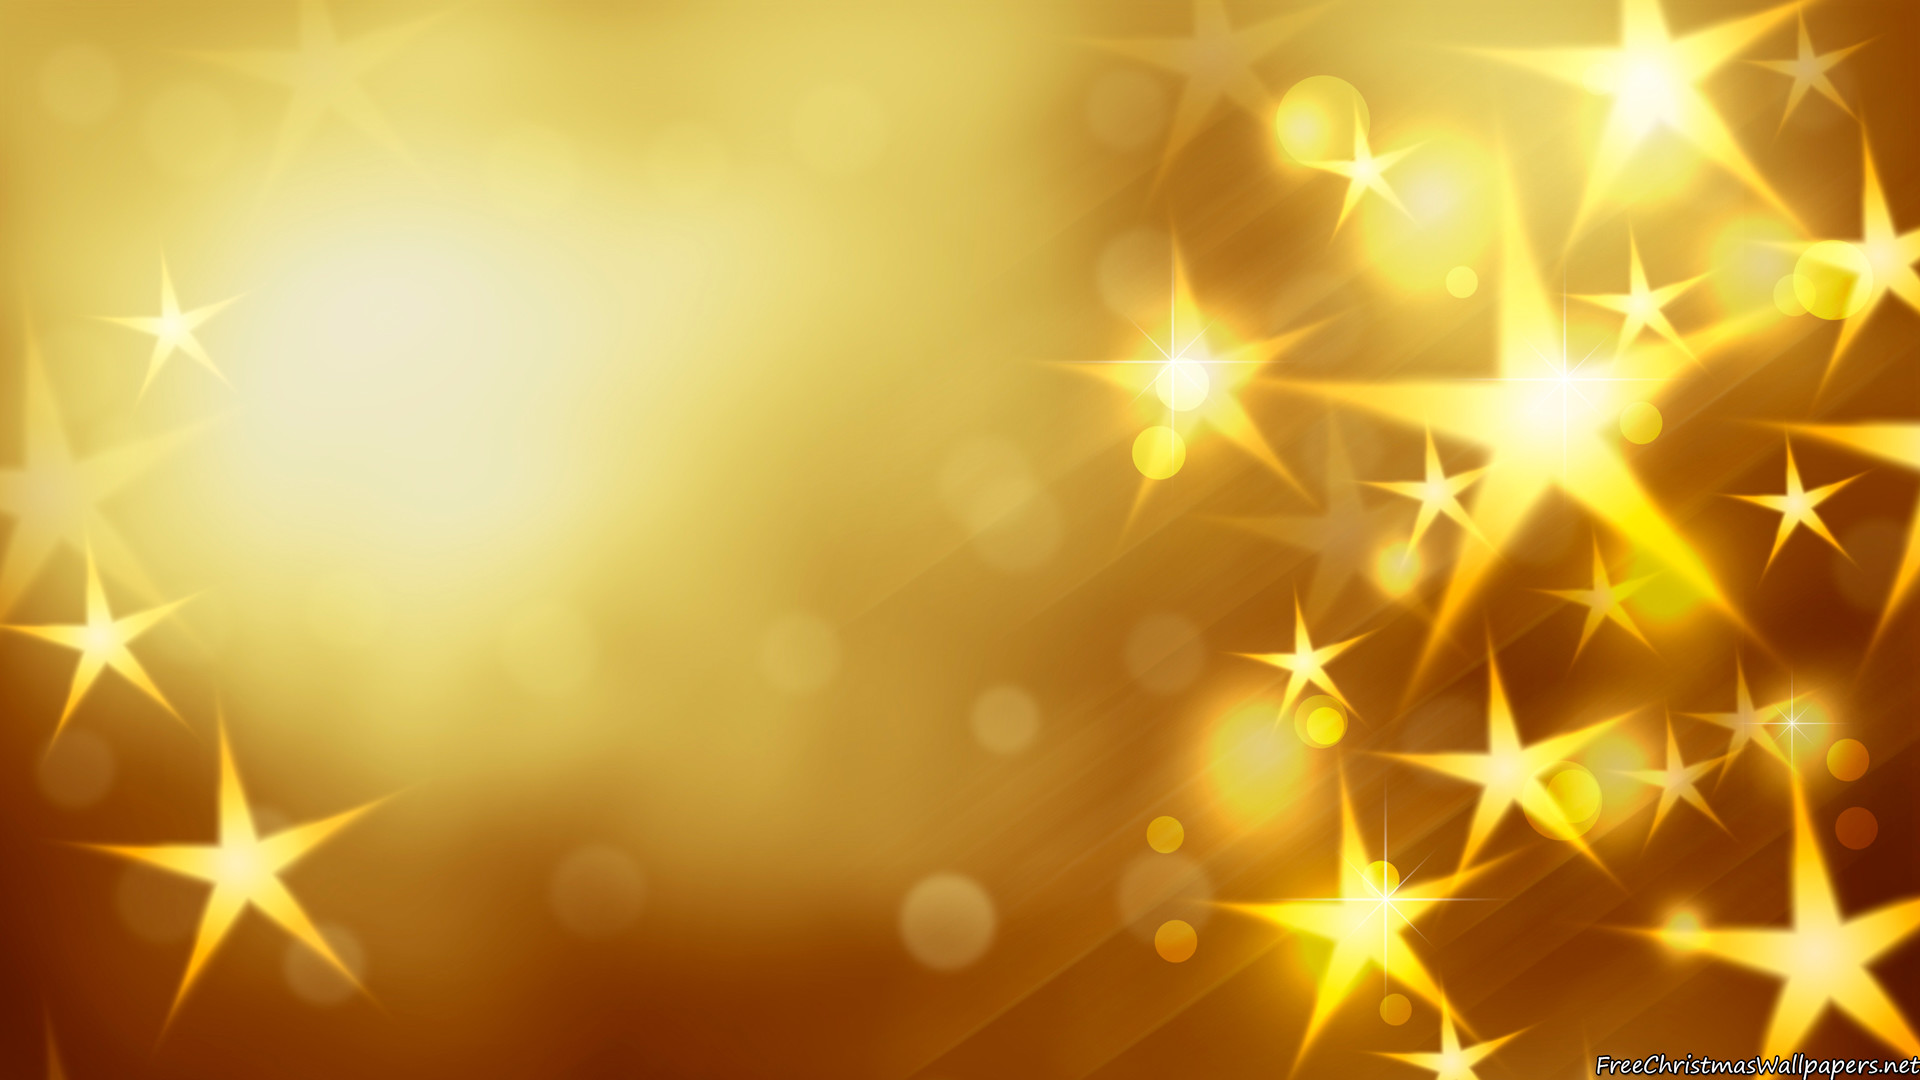 gold stars backgrounds free download #5264